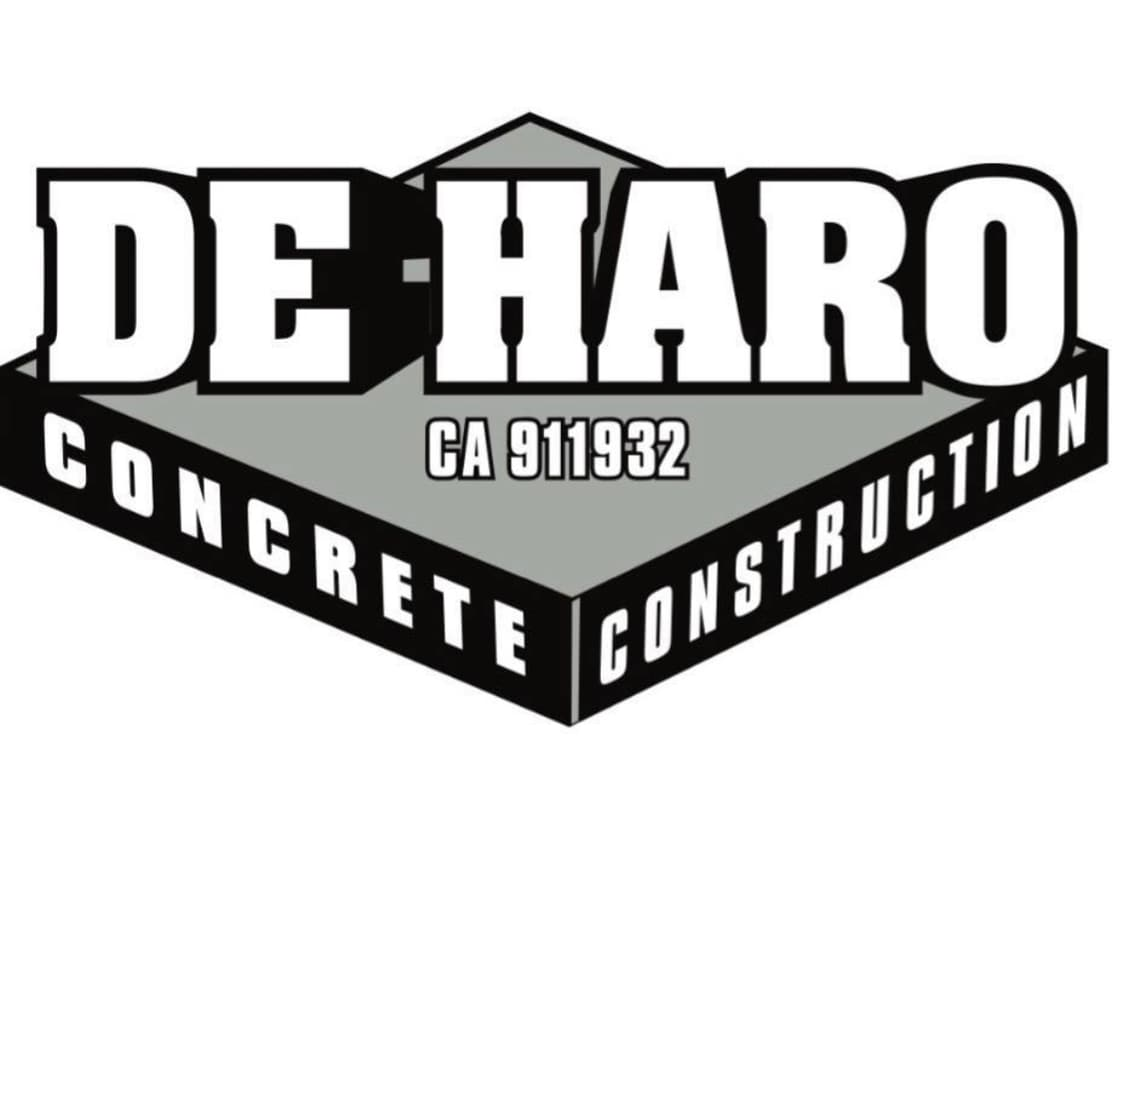 De Haro Concrete Construction